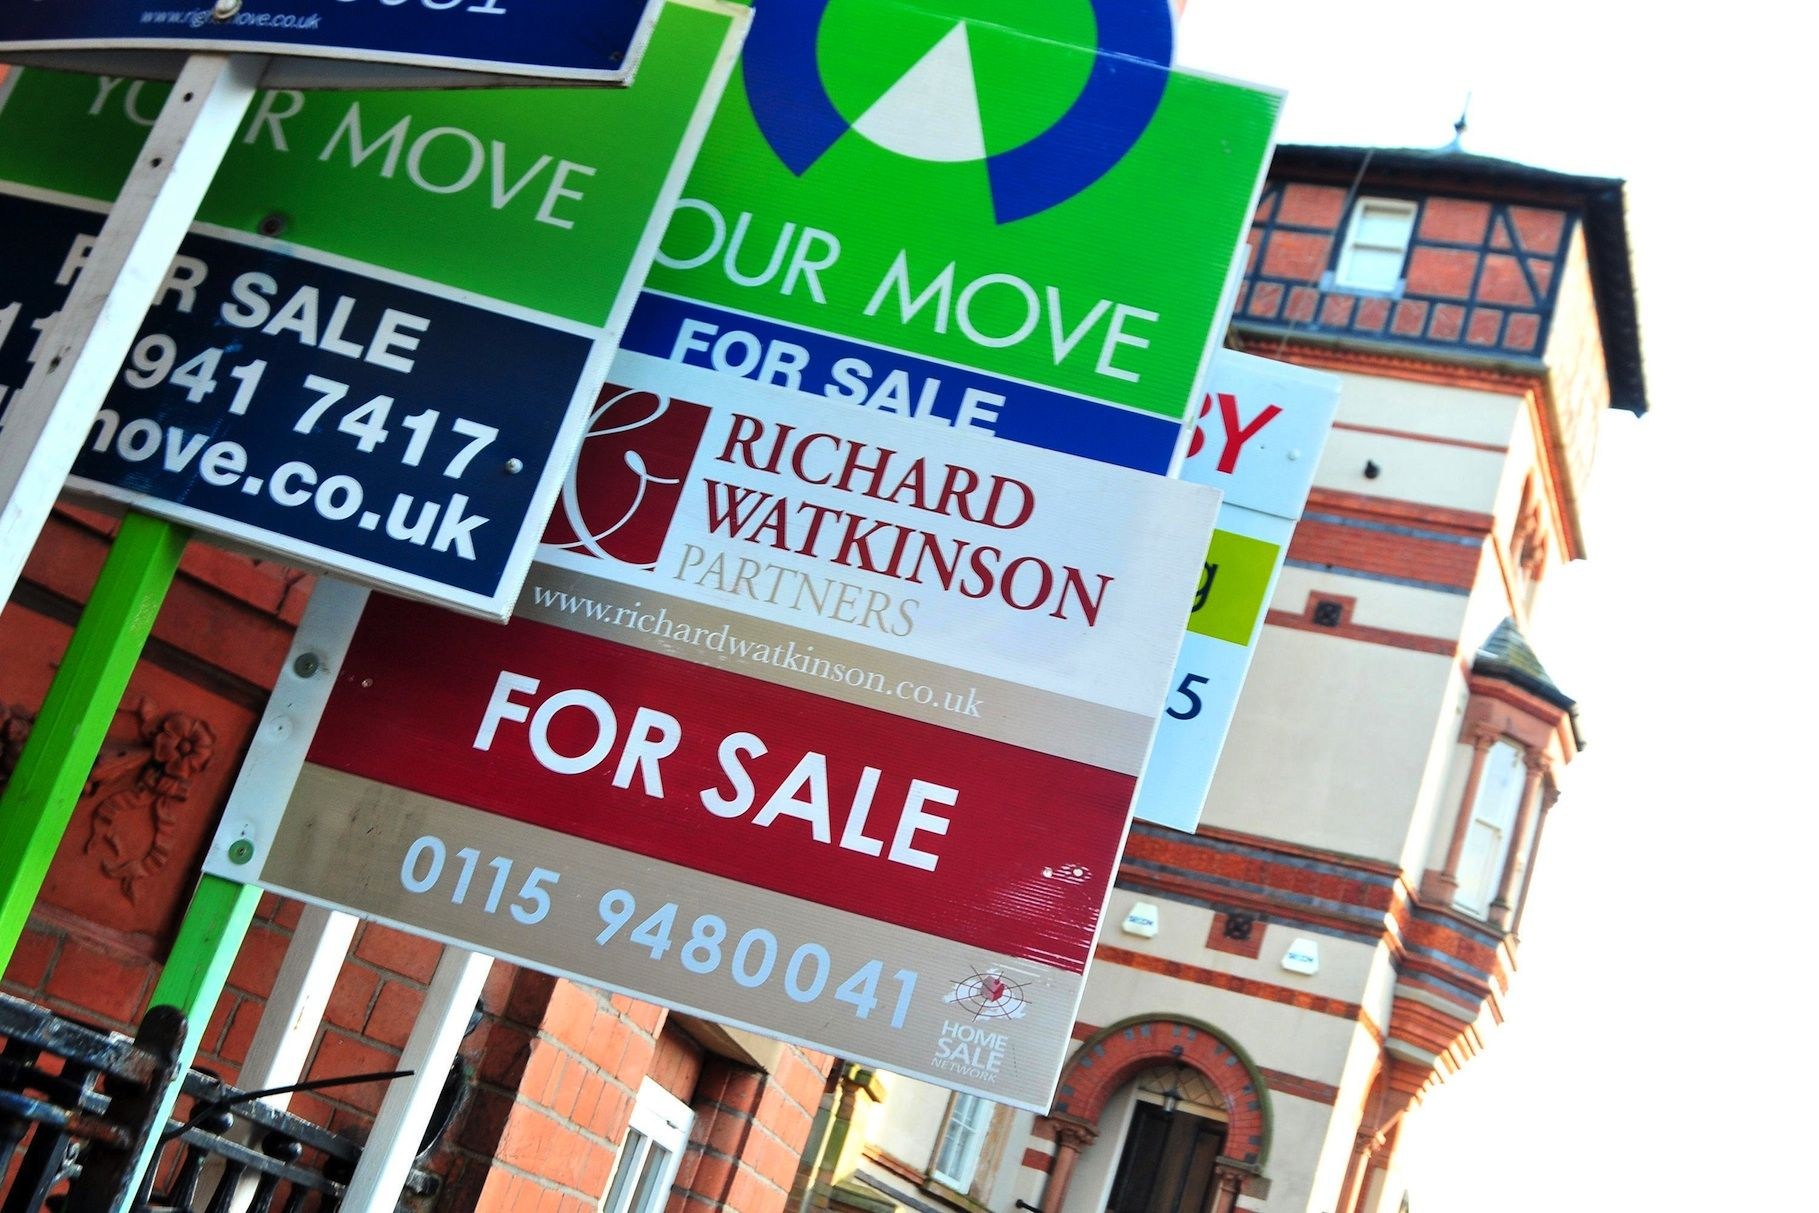 Safe as housing markets - http://www.silversurfers.com/property/estate-agents/safe-housing-markets/